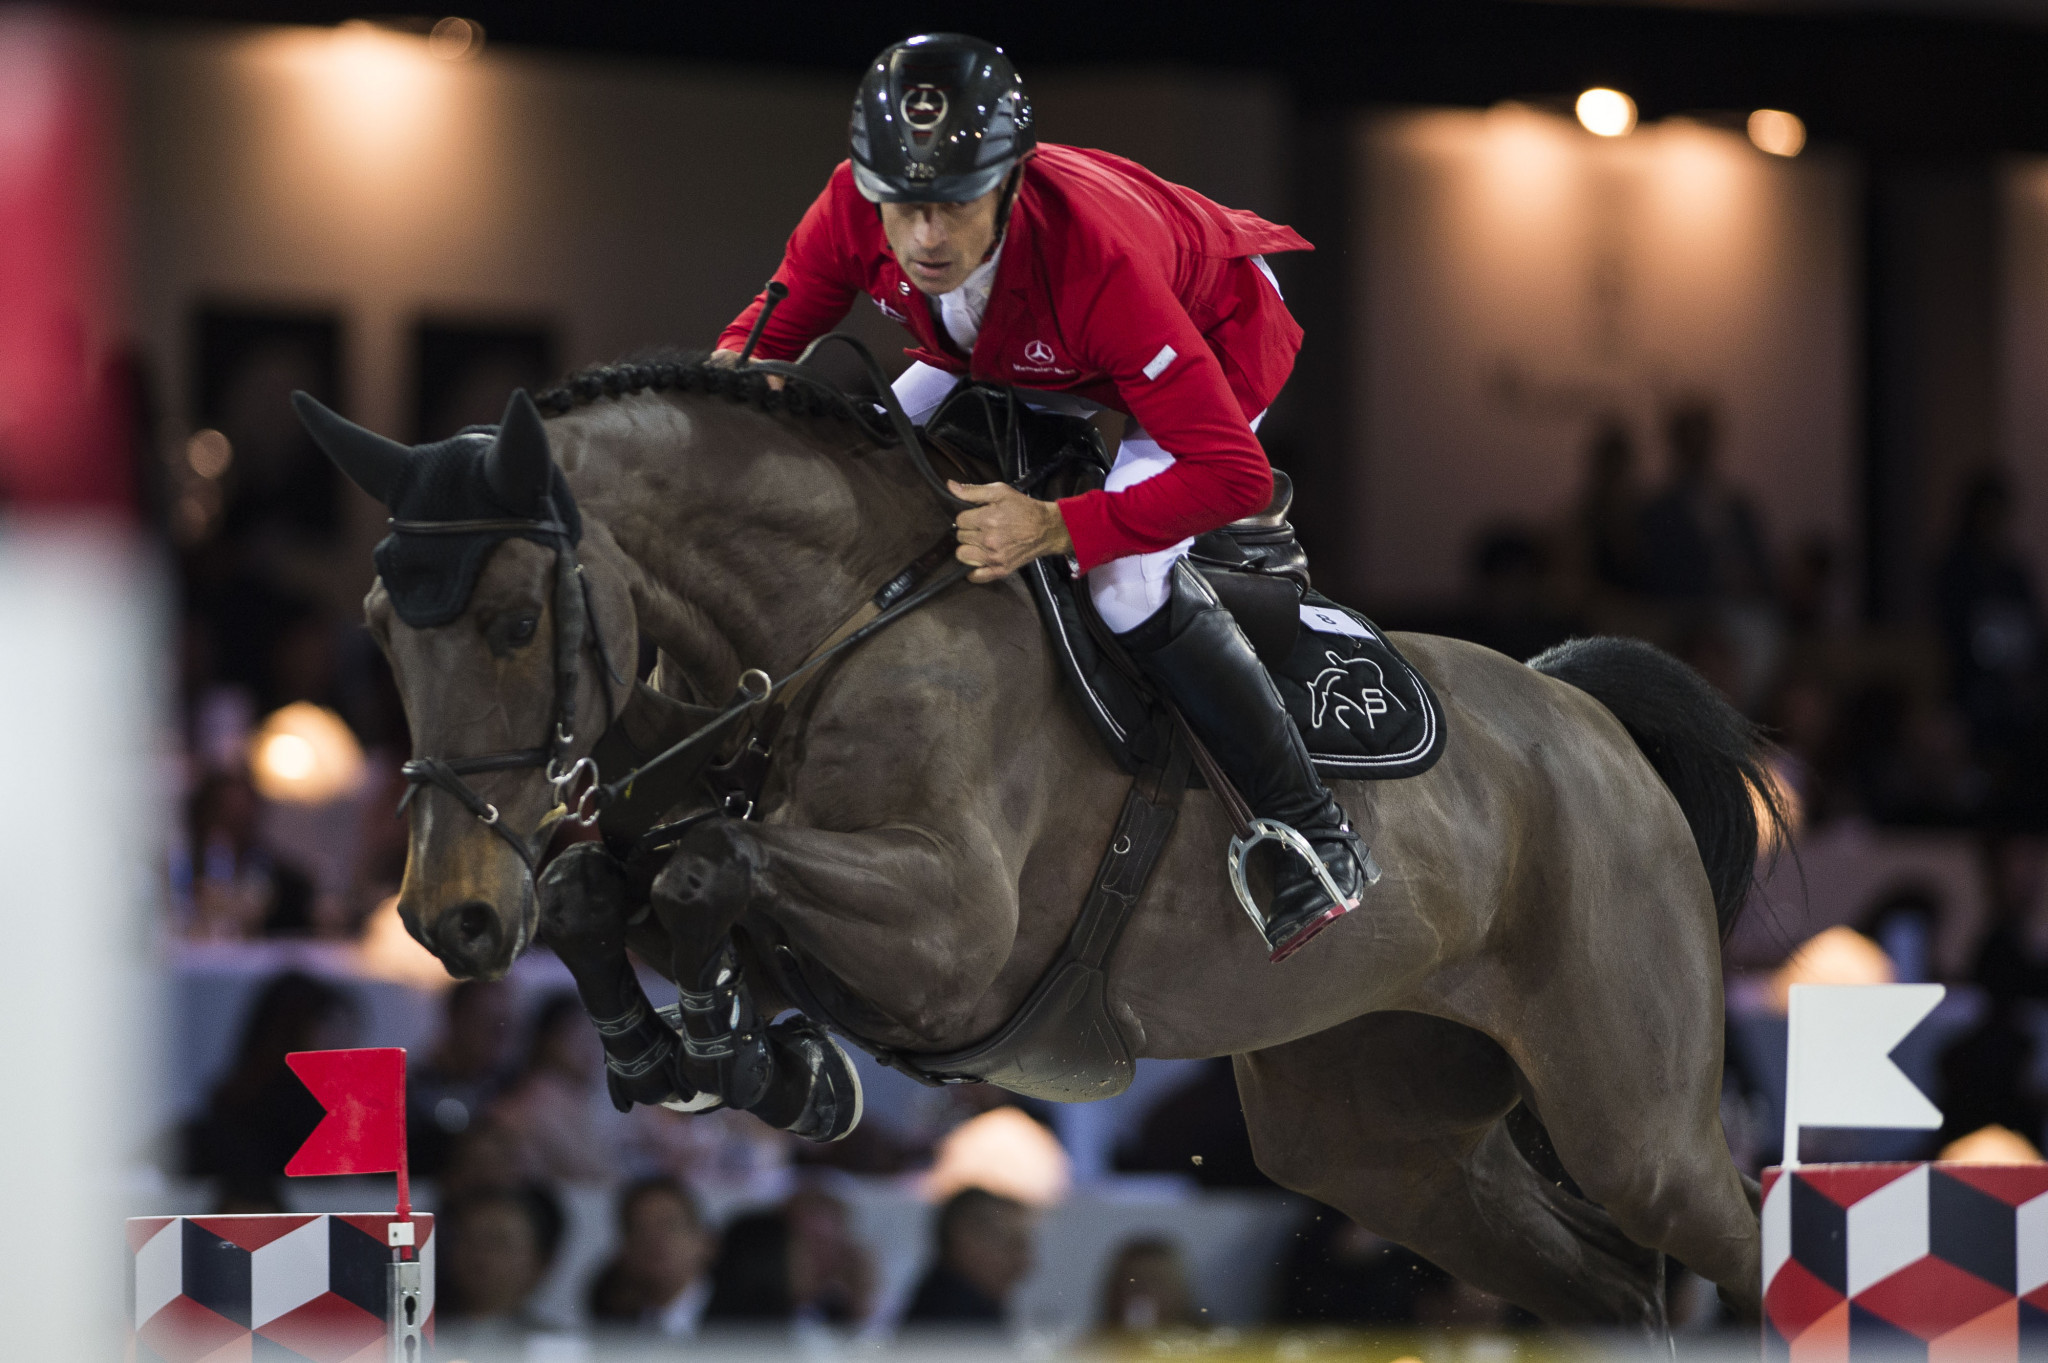 Schwizer claims win on first day of Global Champions Tour in Valkenswaard